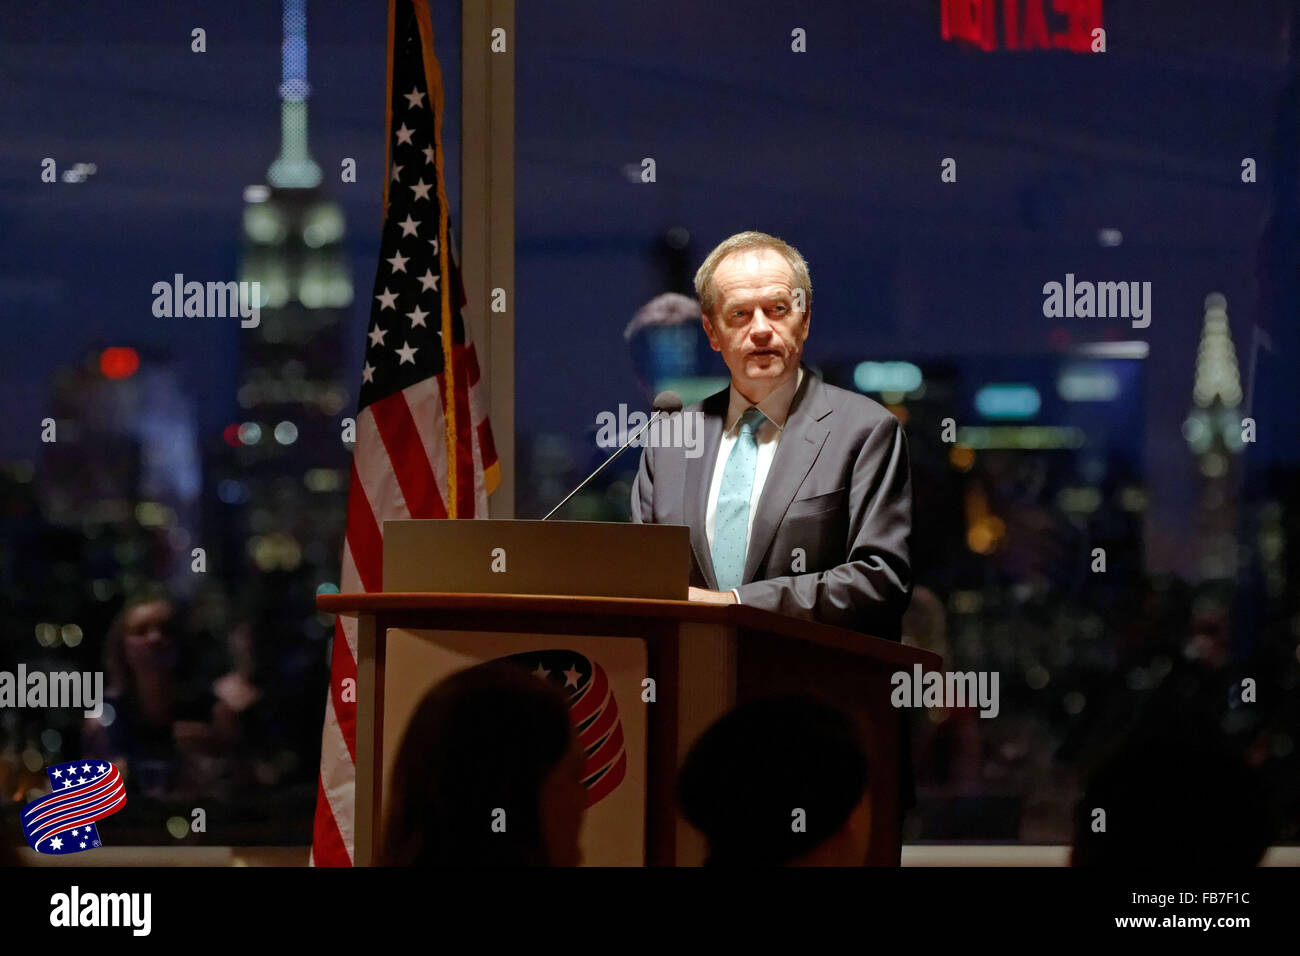 Australian opposition leader Bill Shorten at Australian American Leadership Dinner at the New York Academy of Sciences. - Stock Image